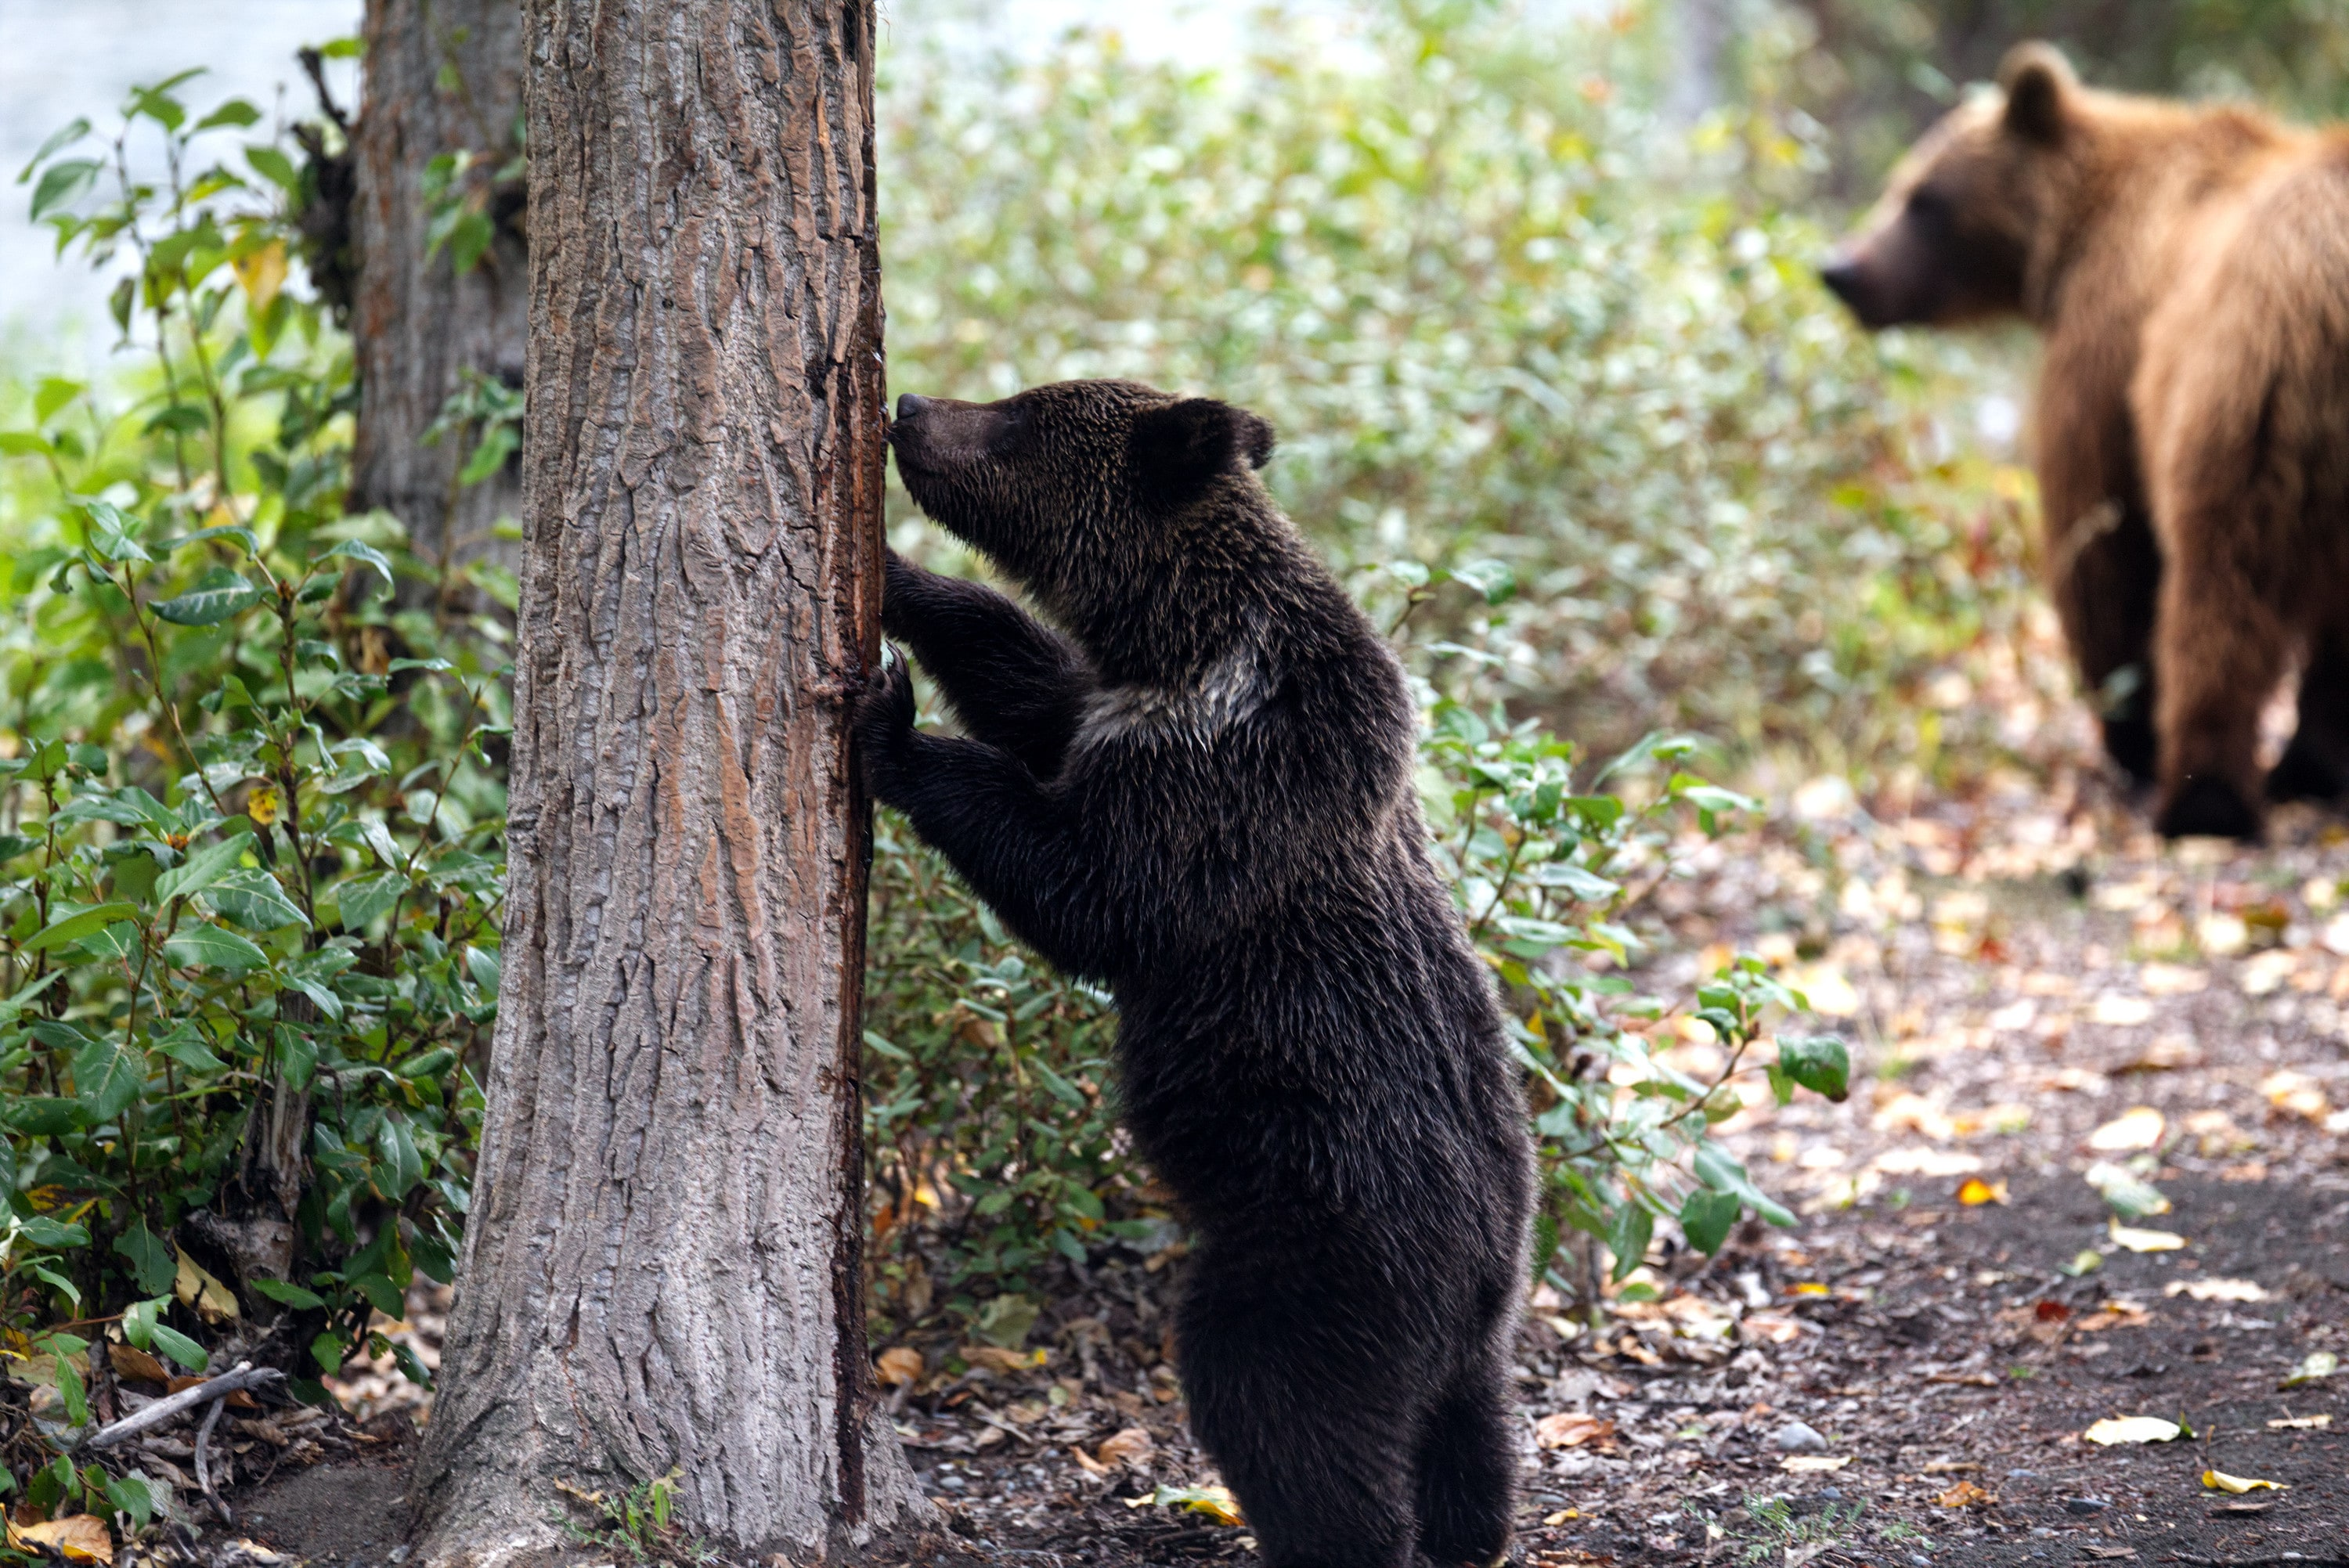 Bear cub standing against a tree and sniffing the bark near the river. (National Geographic for Disney+/Samuel Ellis)